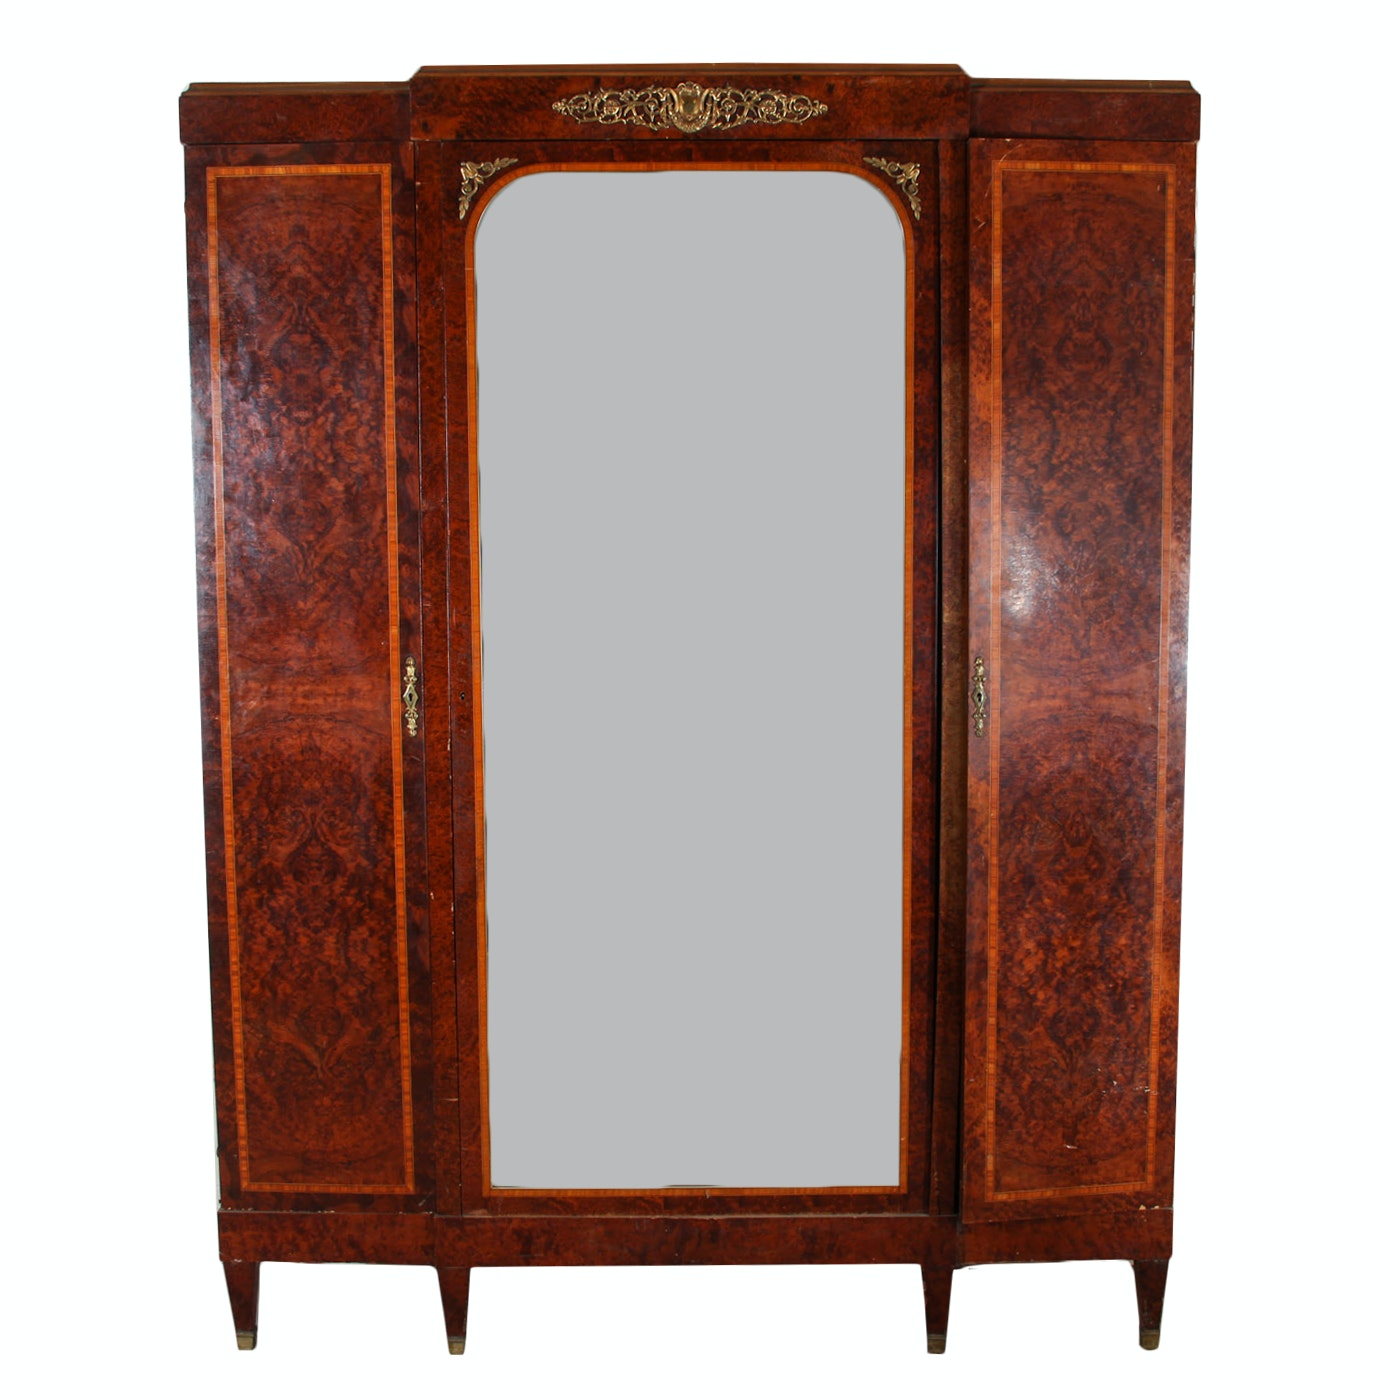 Antique Louis XVI Style Mirrored and Inlaid Armoire